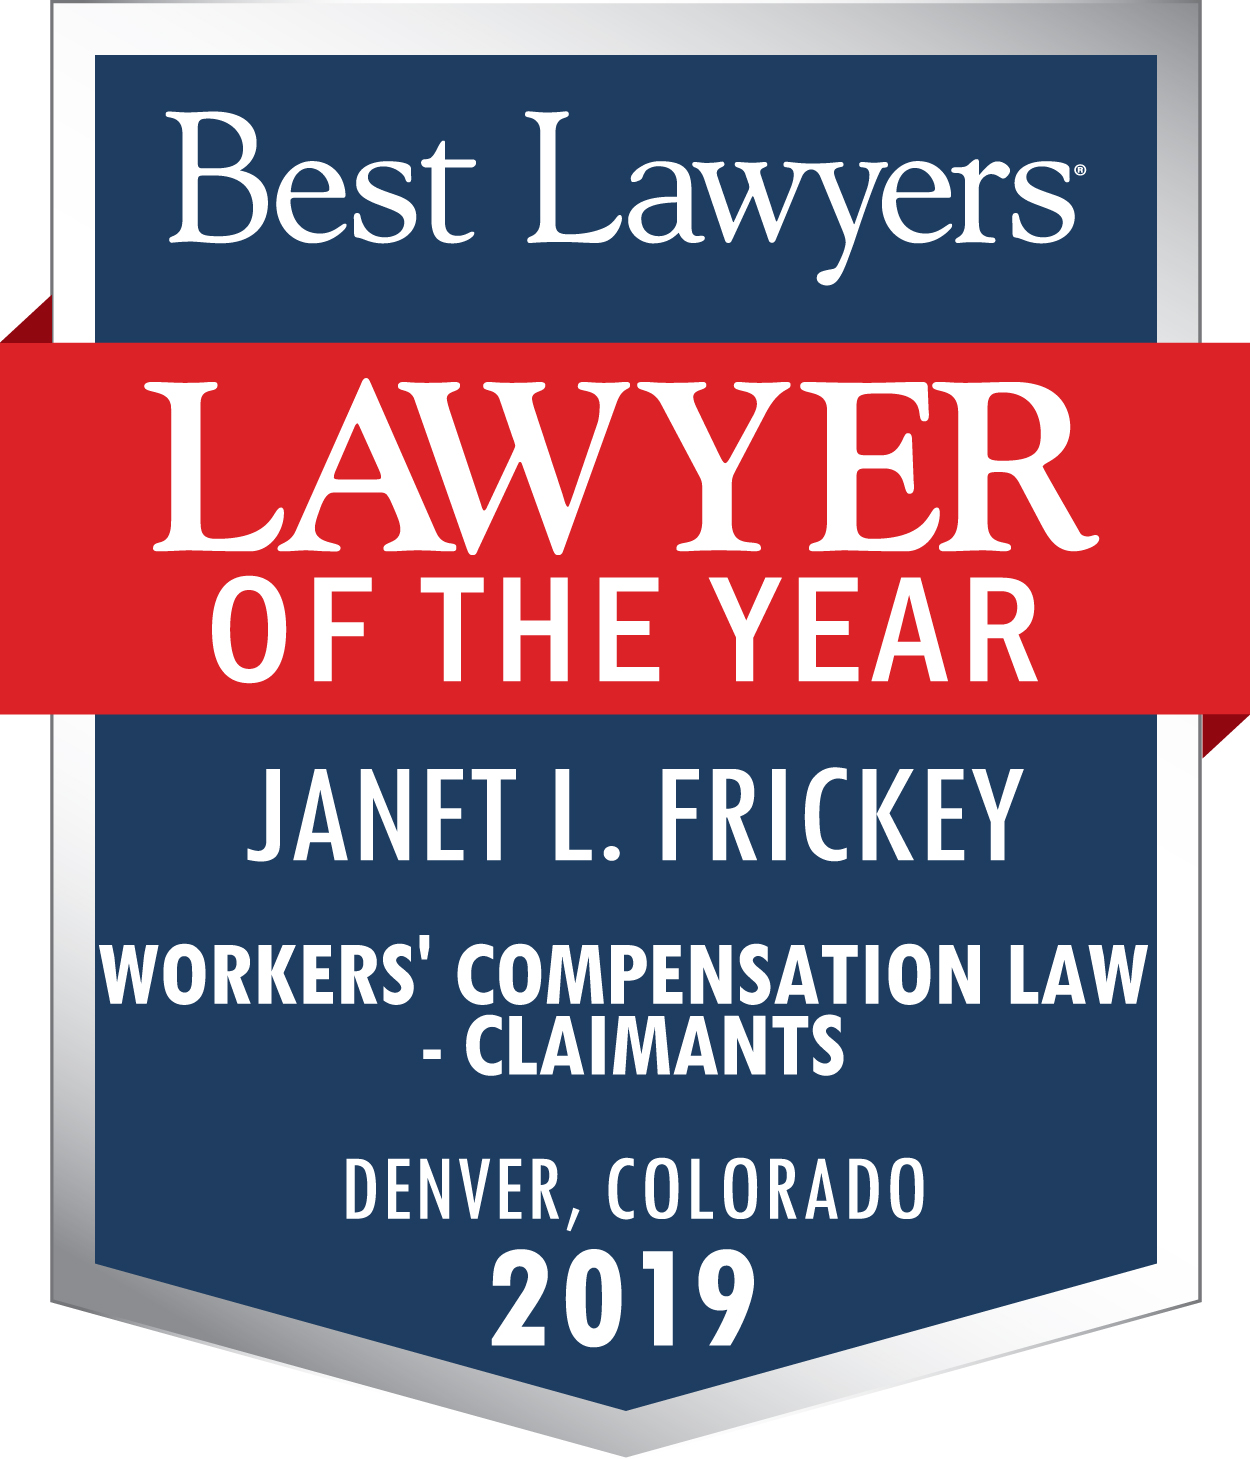 Best Lawyers Lawyer of the Year Award for attorney Janet Frickey in the area of Workers' Compensation Law - Claimants in Denver, Colorado